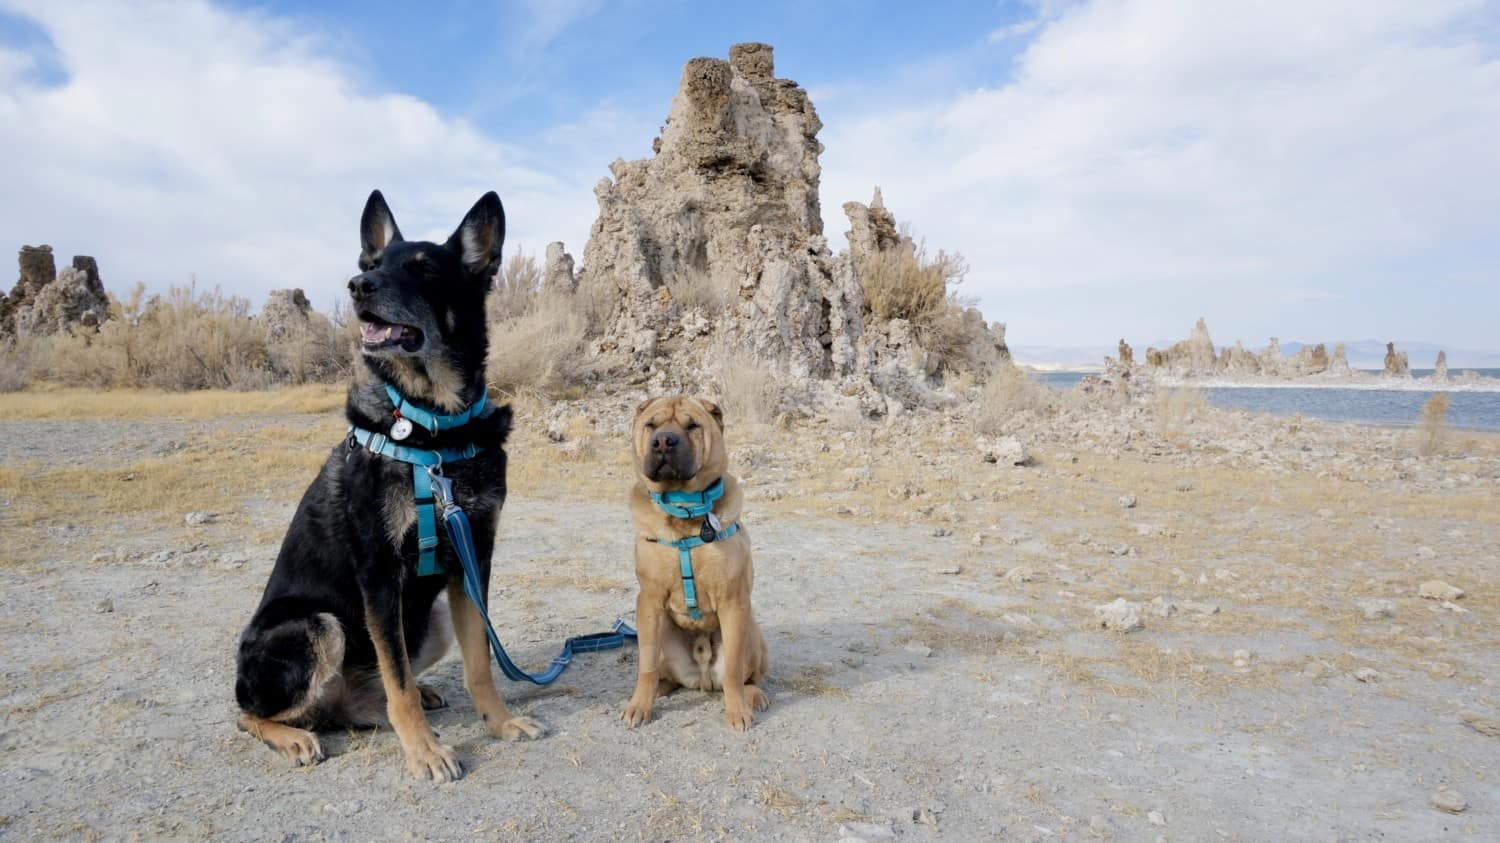 Visiting California's Mono Lake with Dogs